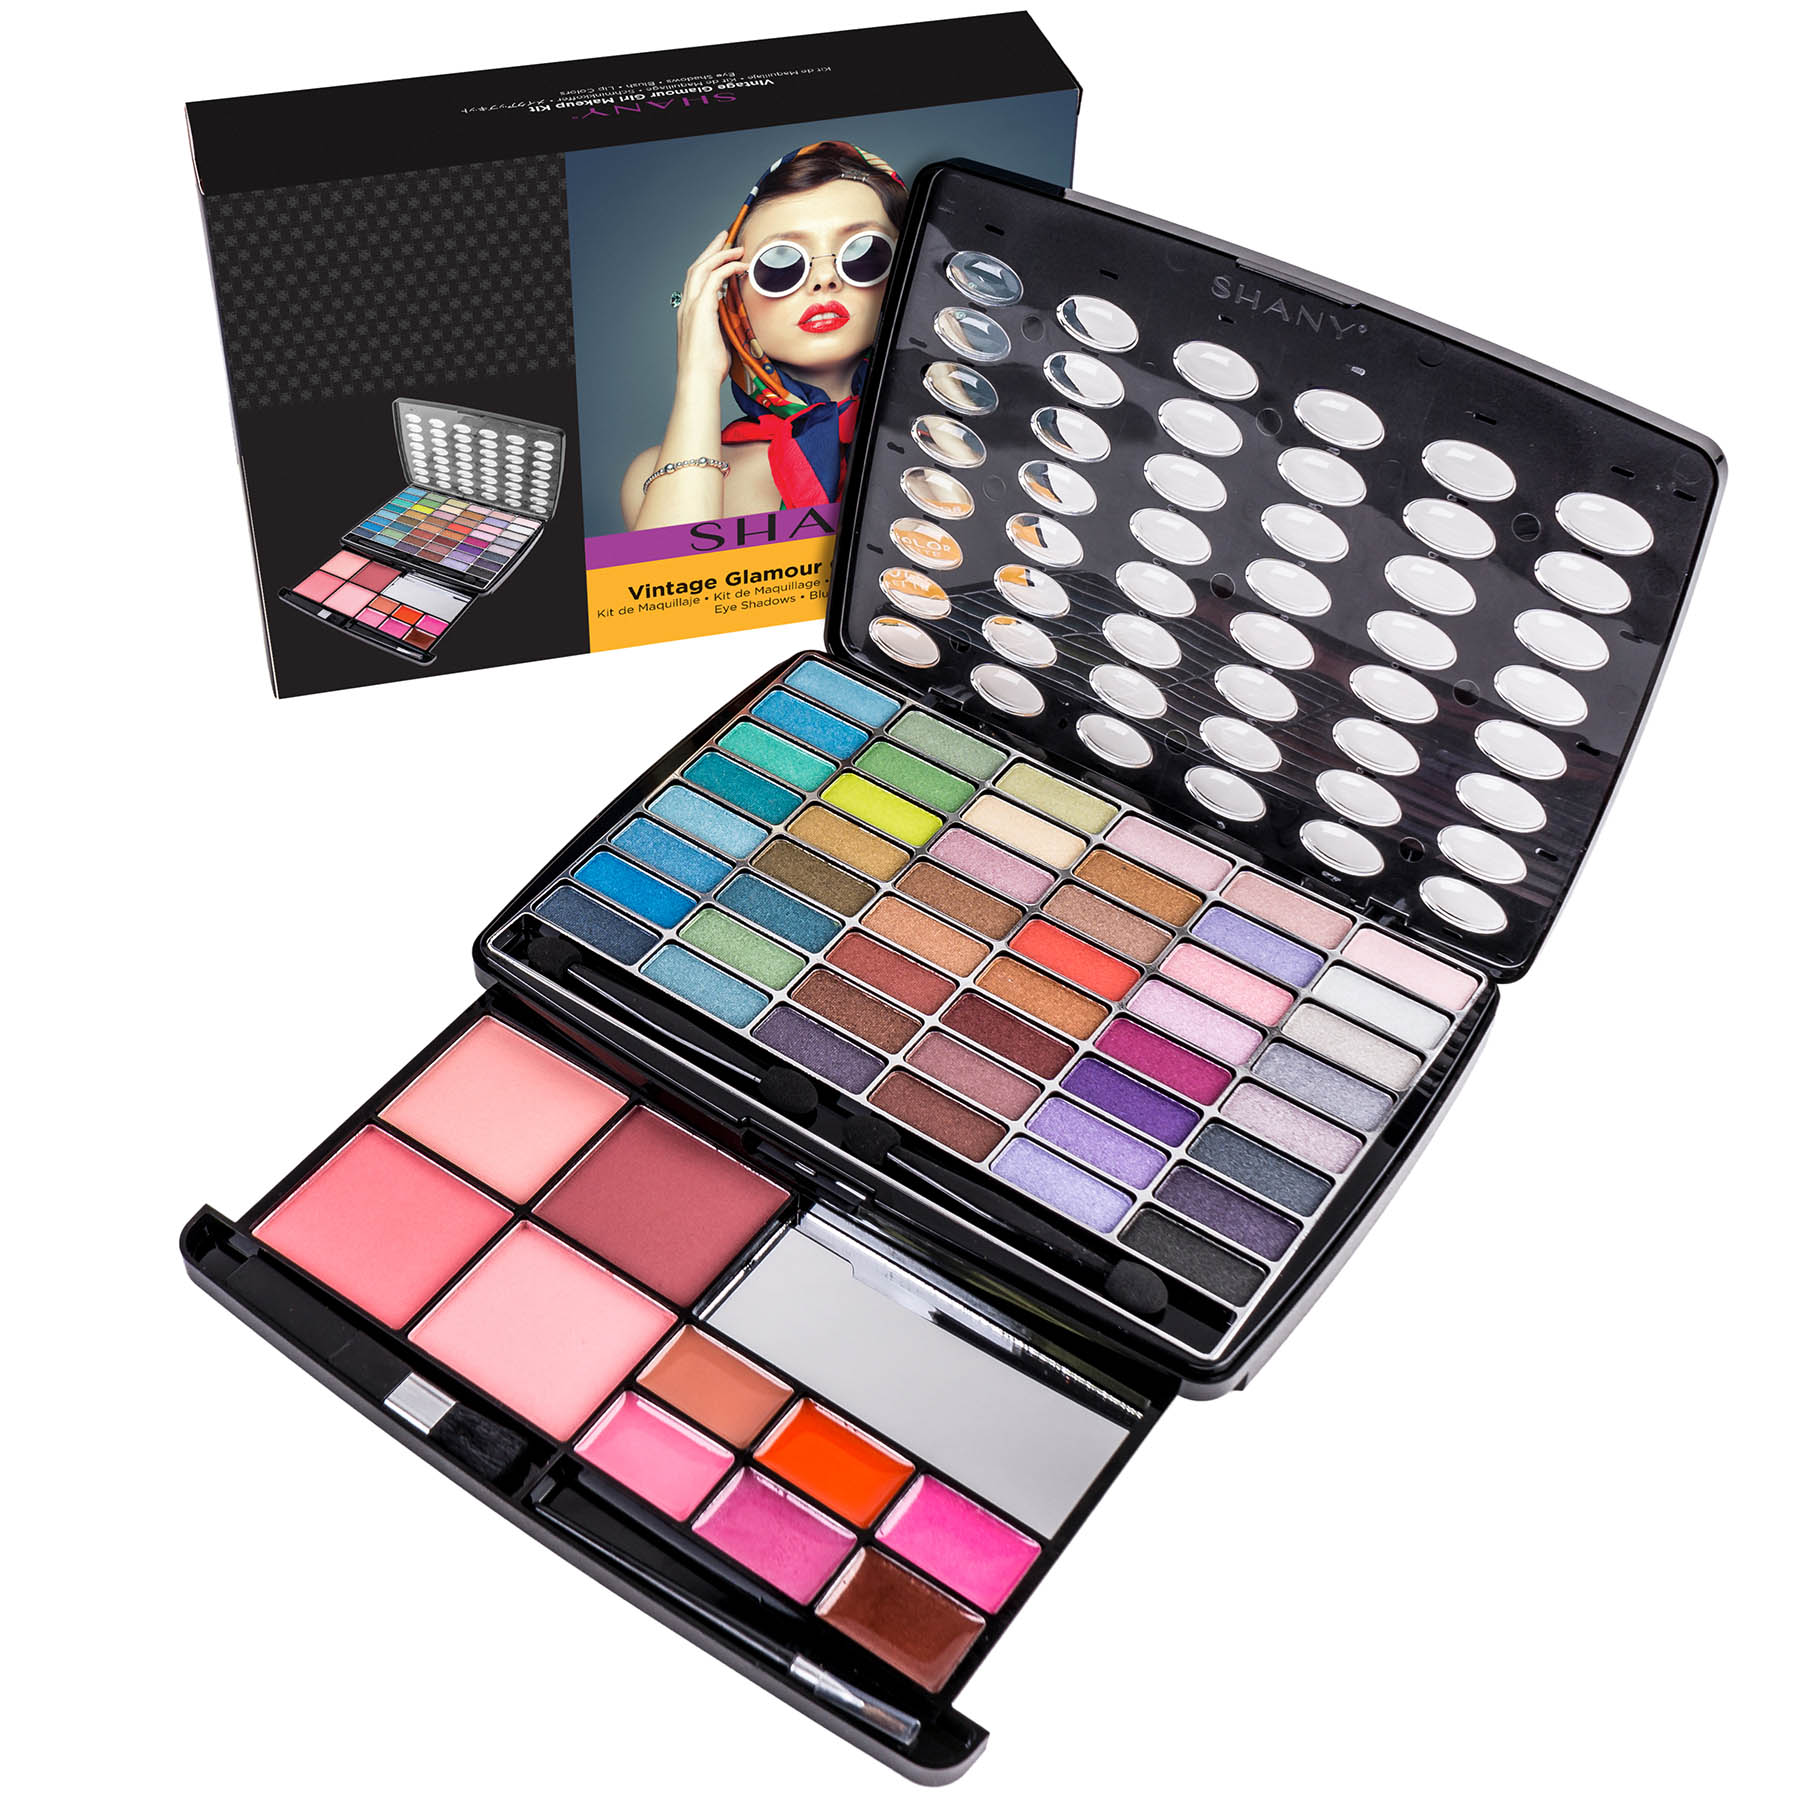 SHANY Glamour Girl Makeup Kit Eye shadow/Blush/Powder - Vintage